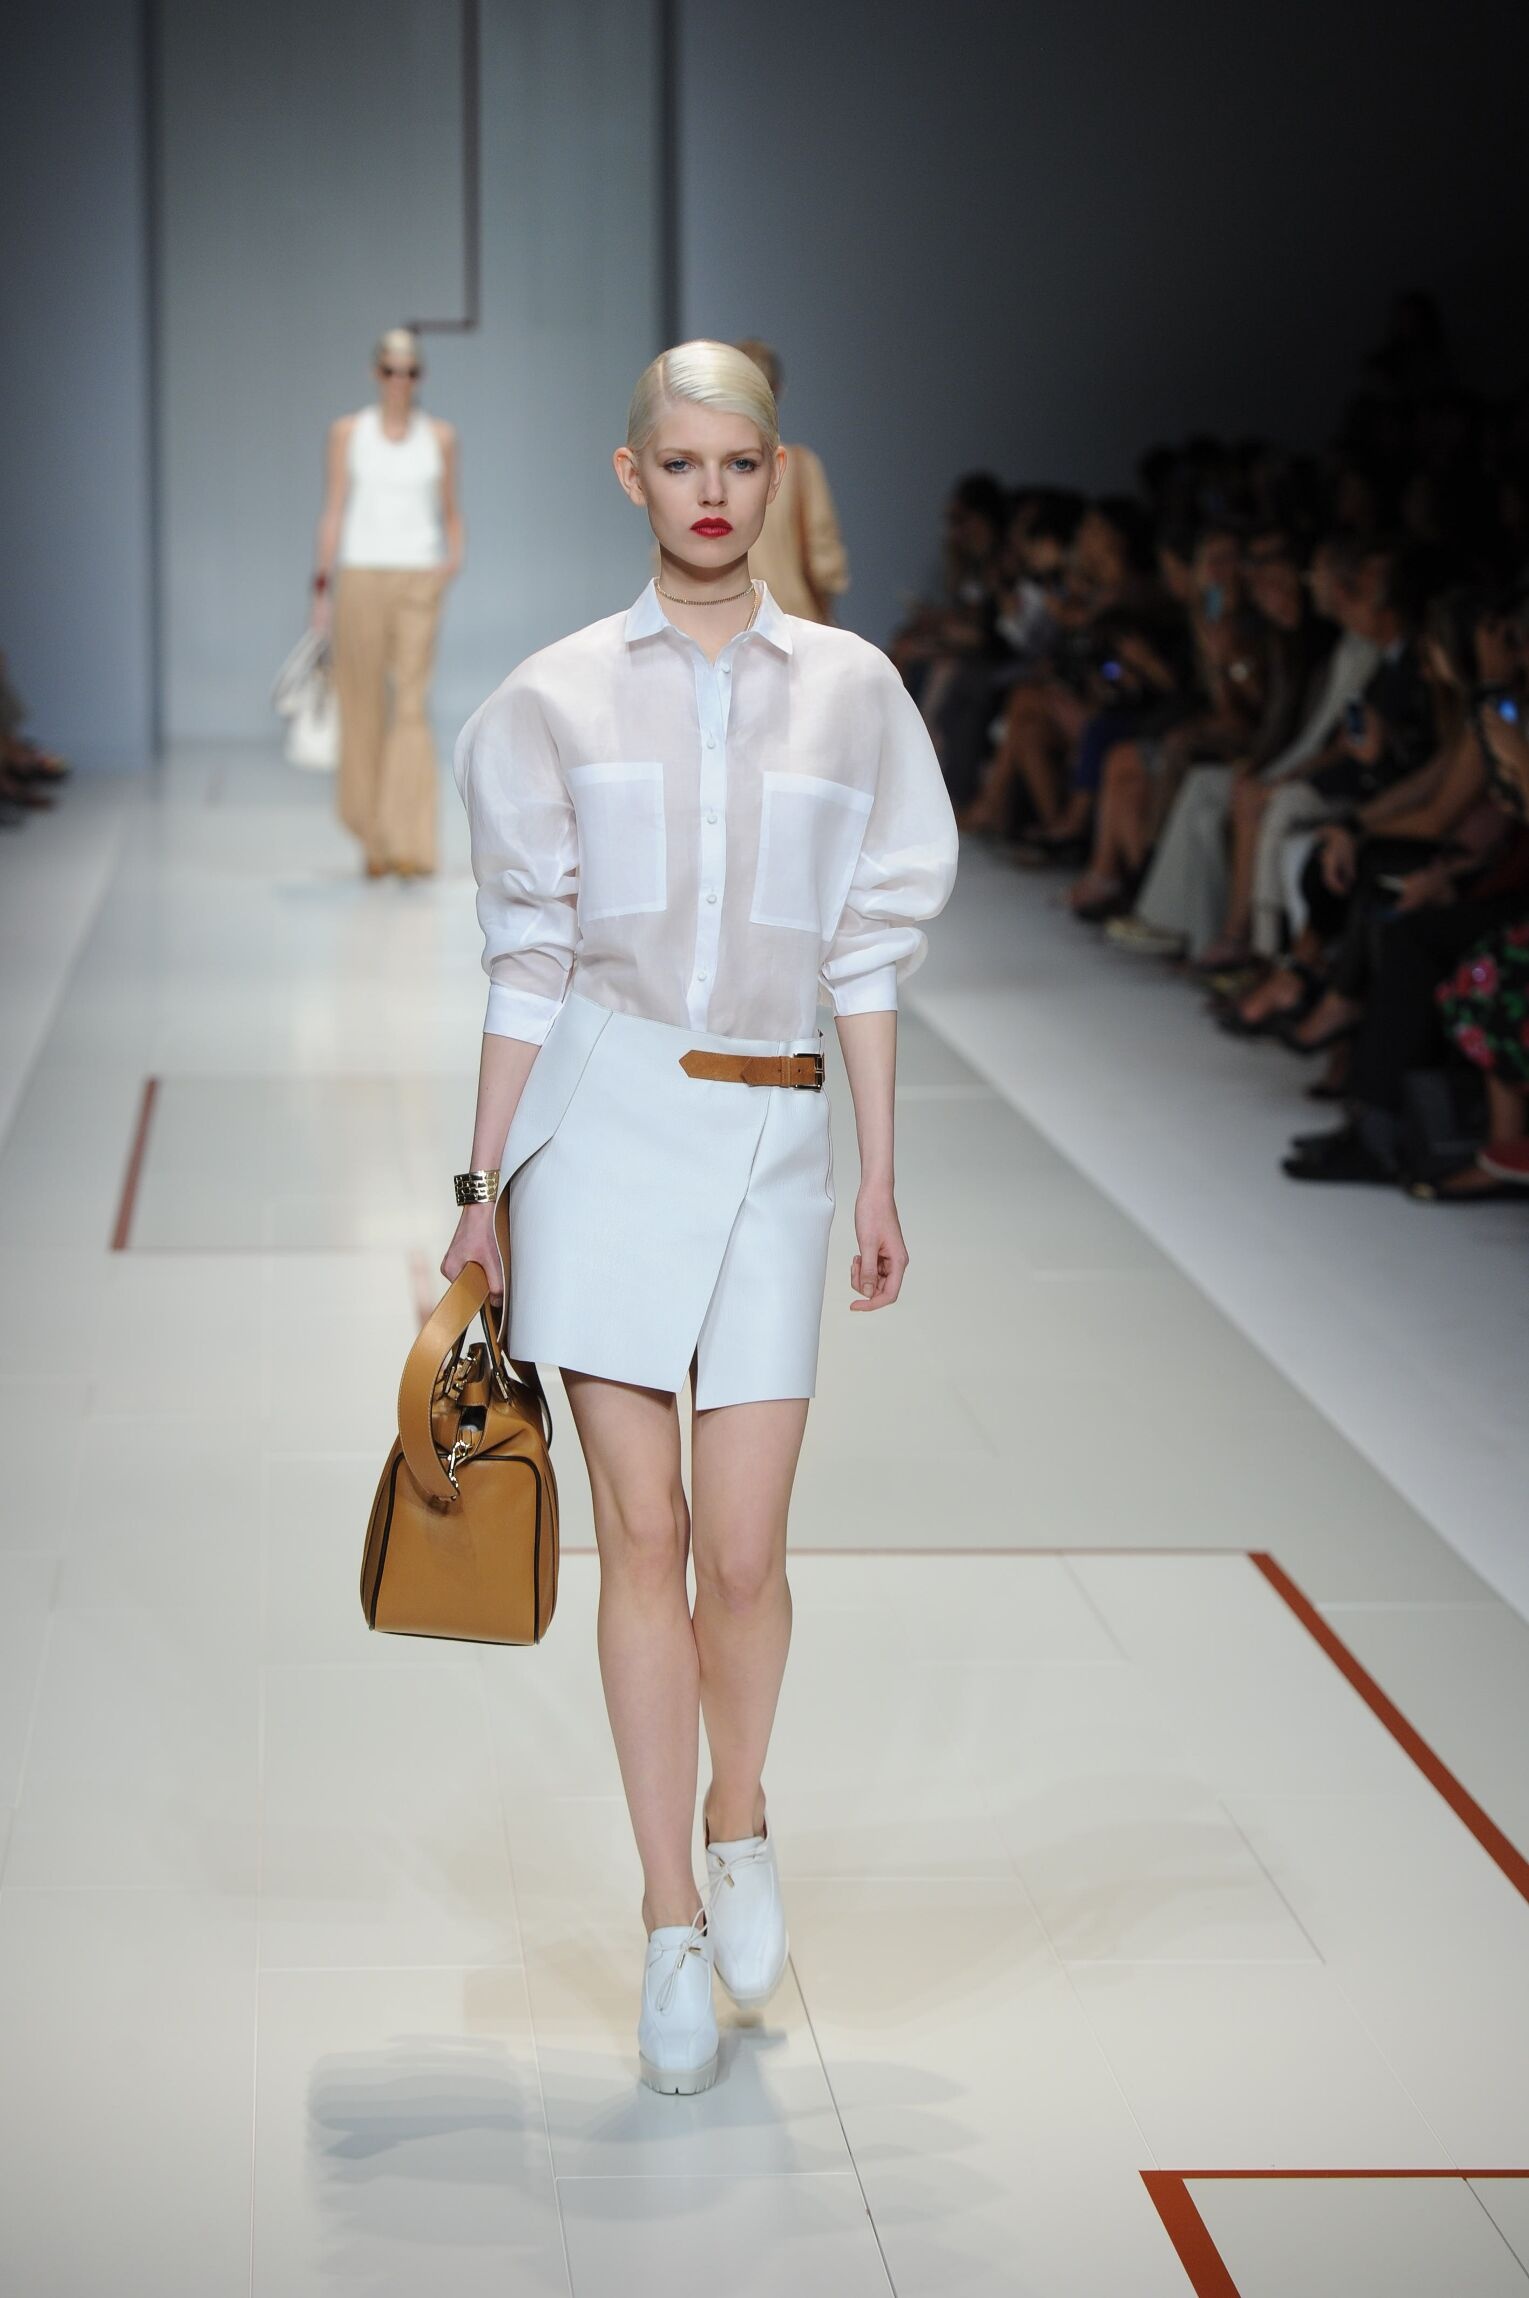 Spring 2015 Woman Fashion Show Trussardi